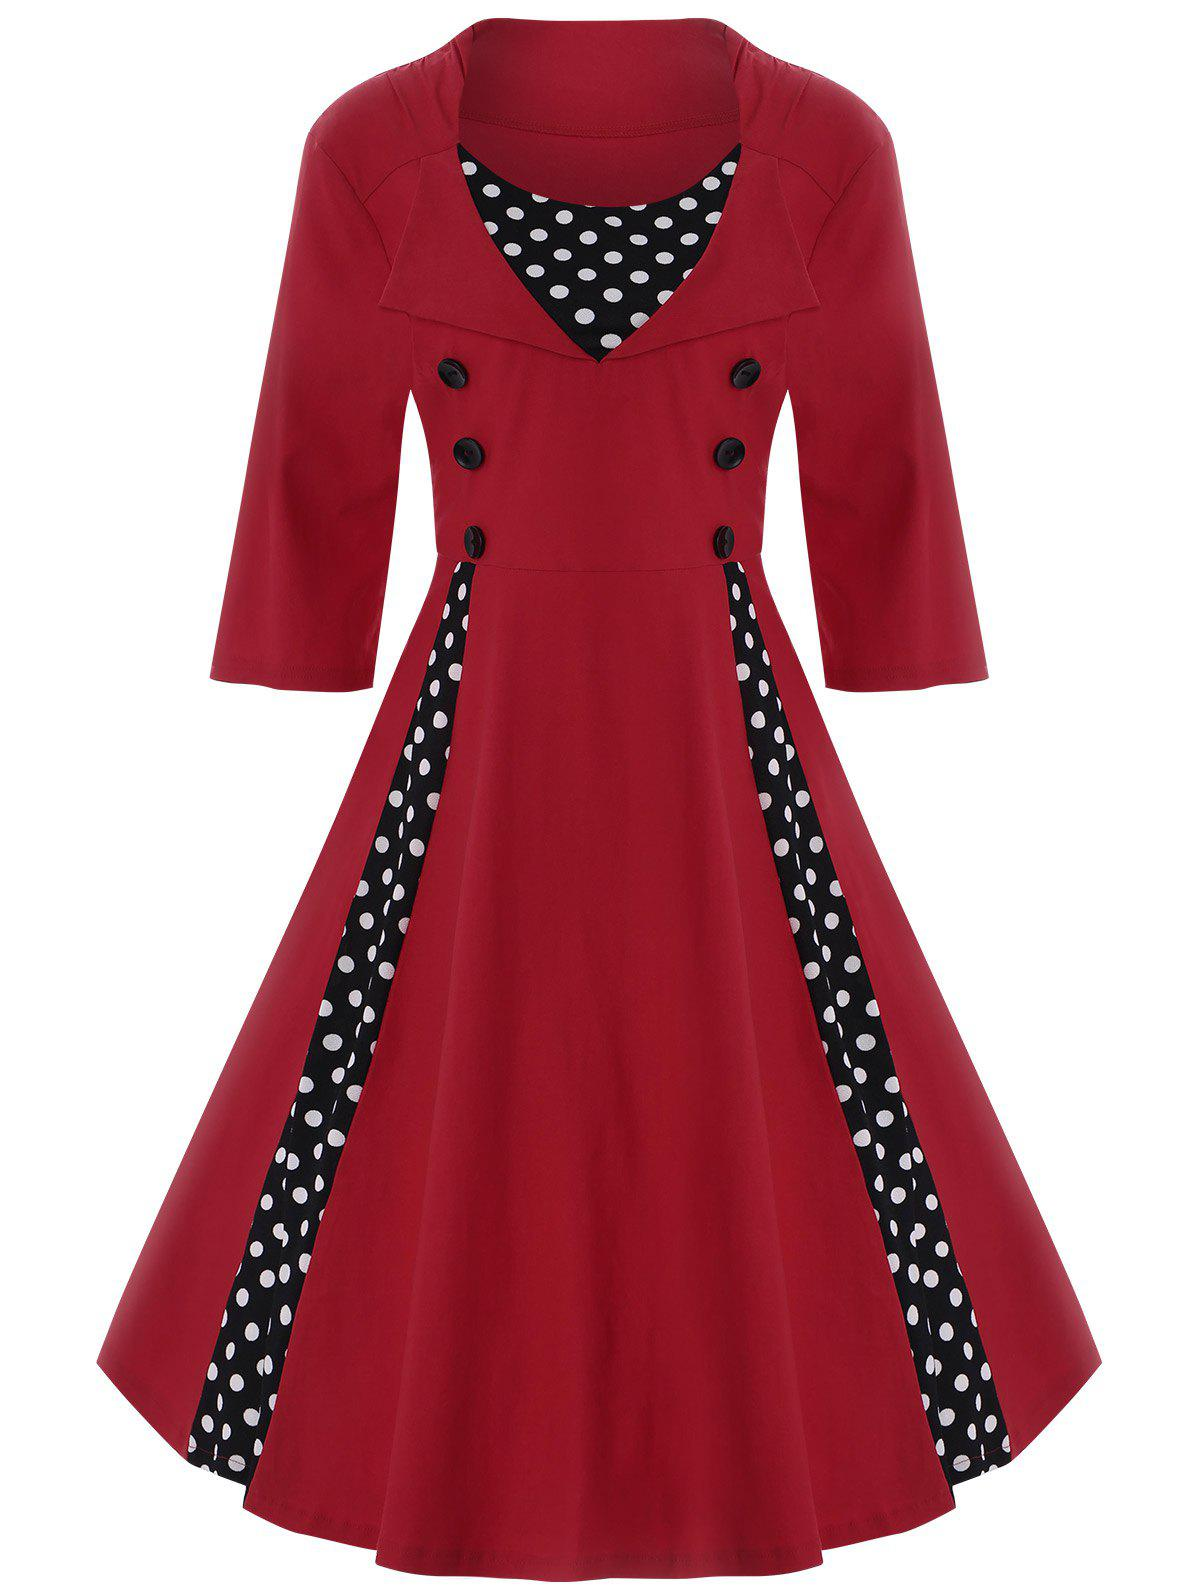 A Line Polka Dot Plus Size DressWOMEN<br><br>Size: 9XL; Color: RED; Style: Vintage; Material: Polyester; Silhouette: A-Line; Dresses Length: Knee-Length; Neckline: Round Collar; Sleeve Length: Half Sleeves; Pattern Type: Polka Dot; With Belt: No; Season: Spring,Summer; Weight: 0.4500kg; Package Contents: 1 x Dress;